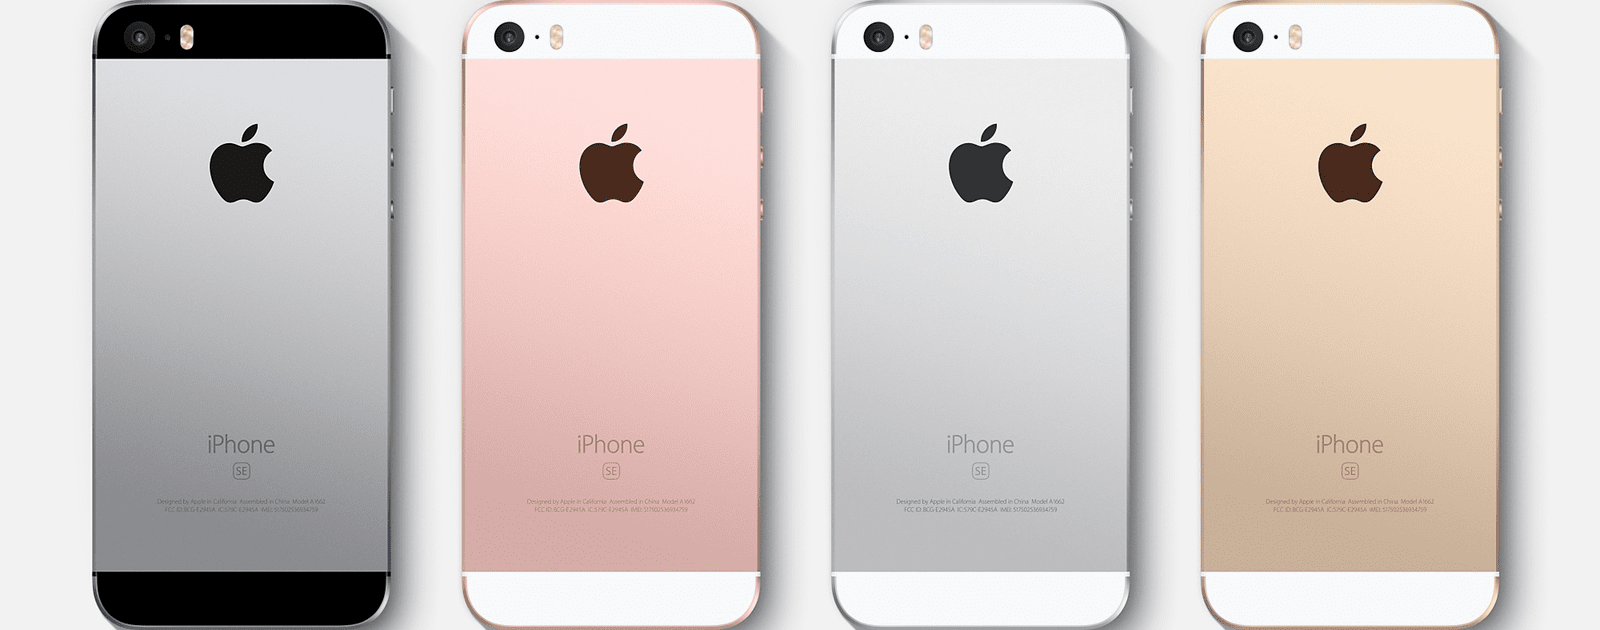 iPhone SE2 Will be 'Key Growth Driver' in 2020